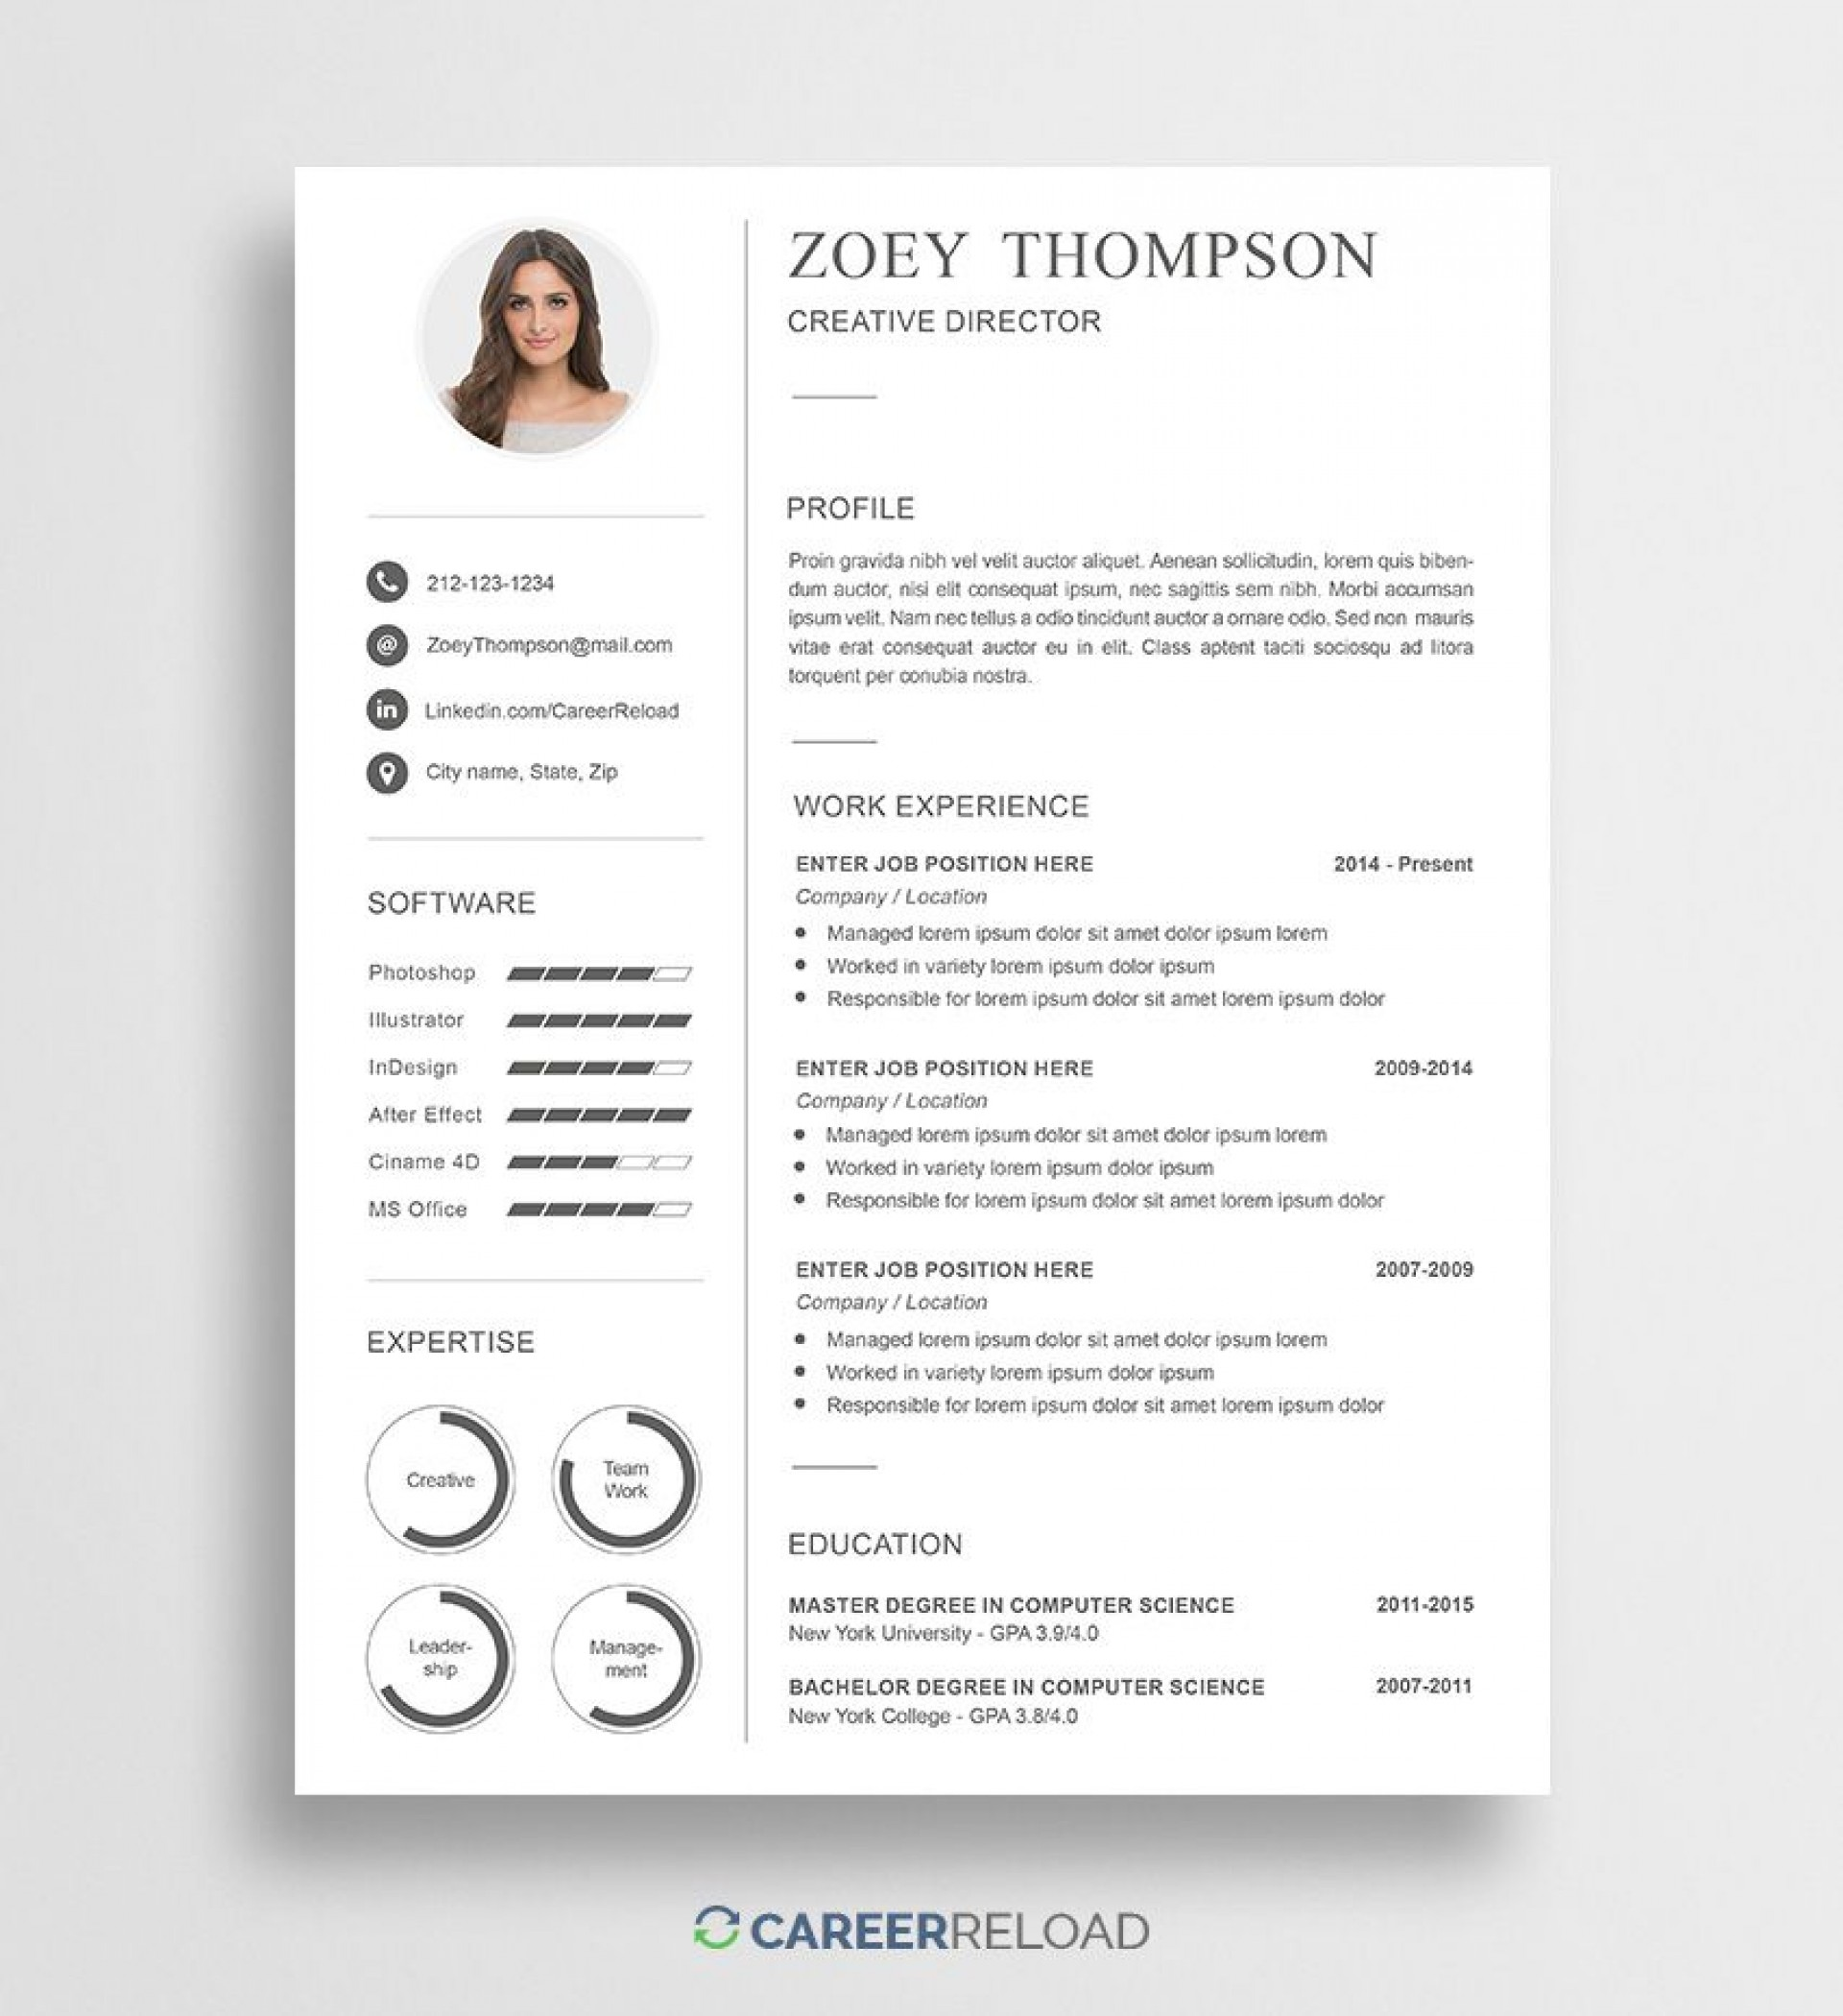 009 Sensational Photoshop Cv Template Free Download High Def  Creative Resume Psd Adobe1920